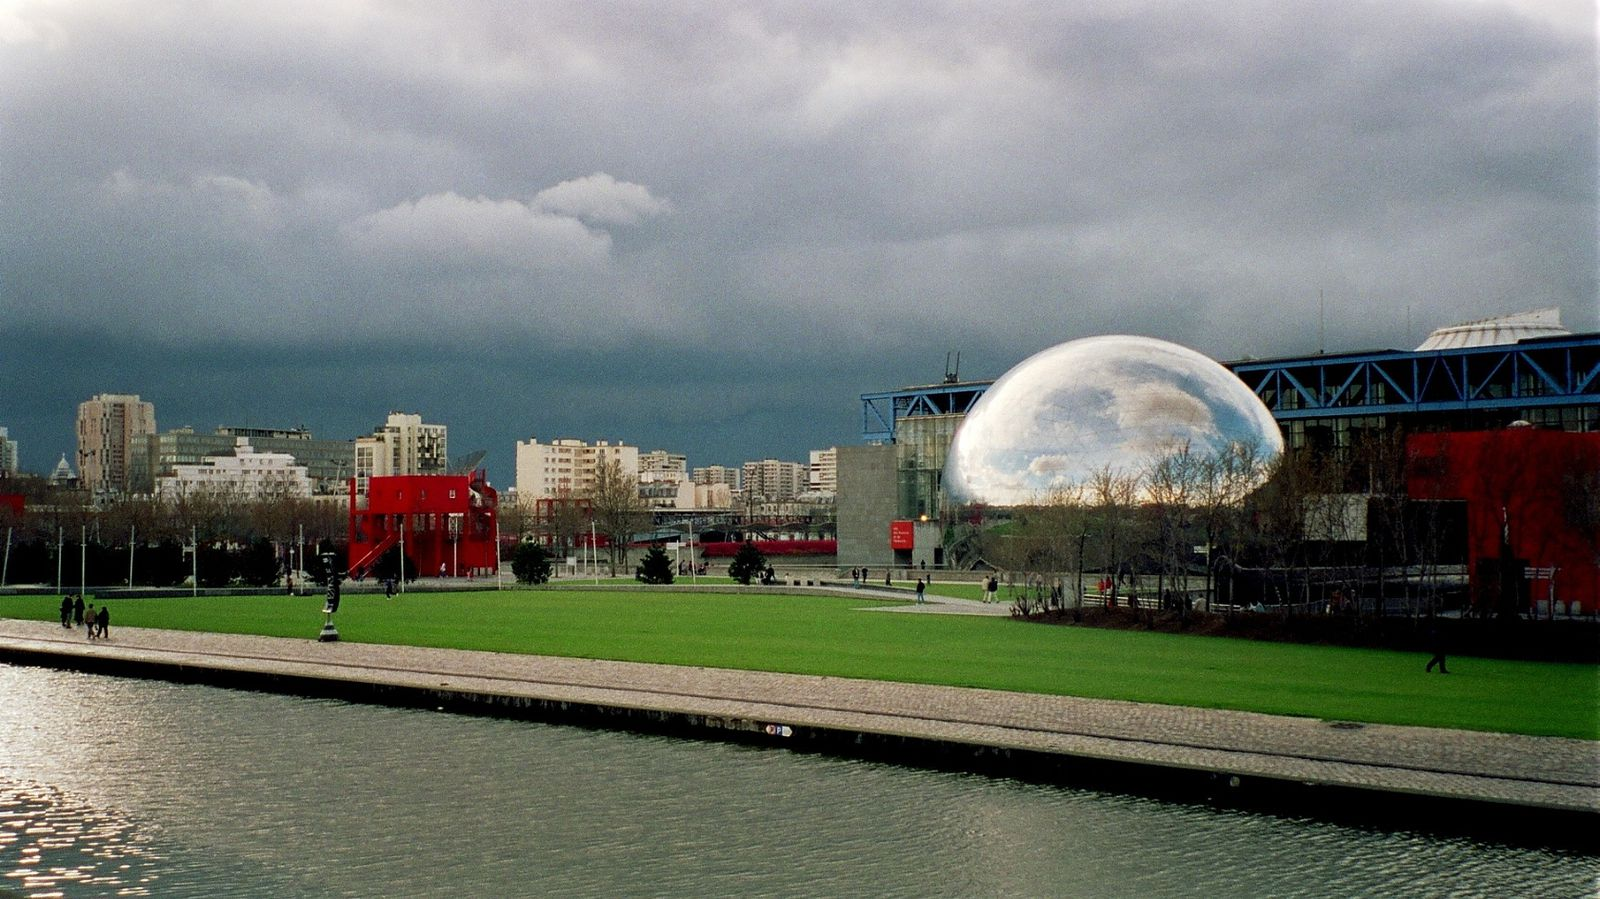 Paris - La géode